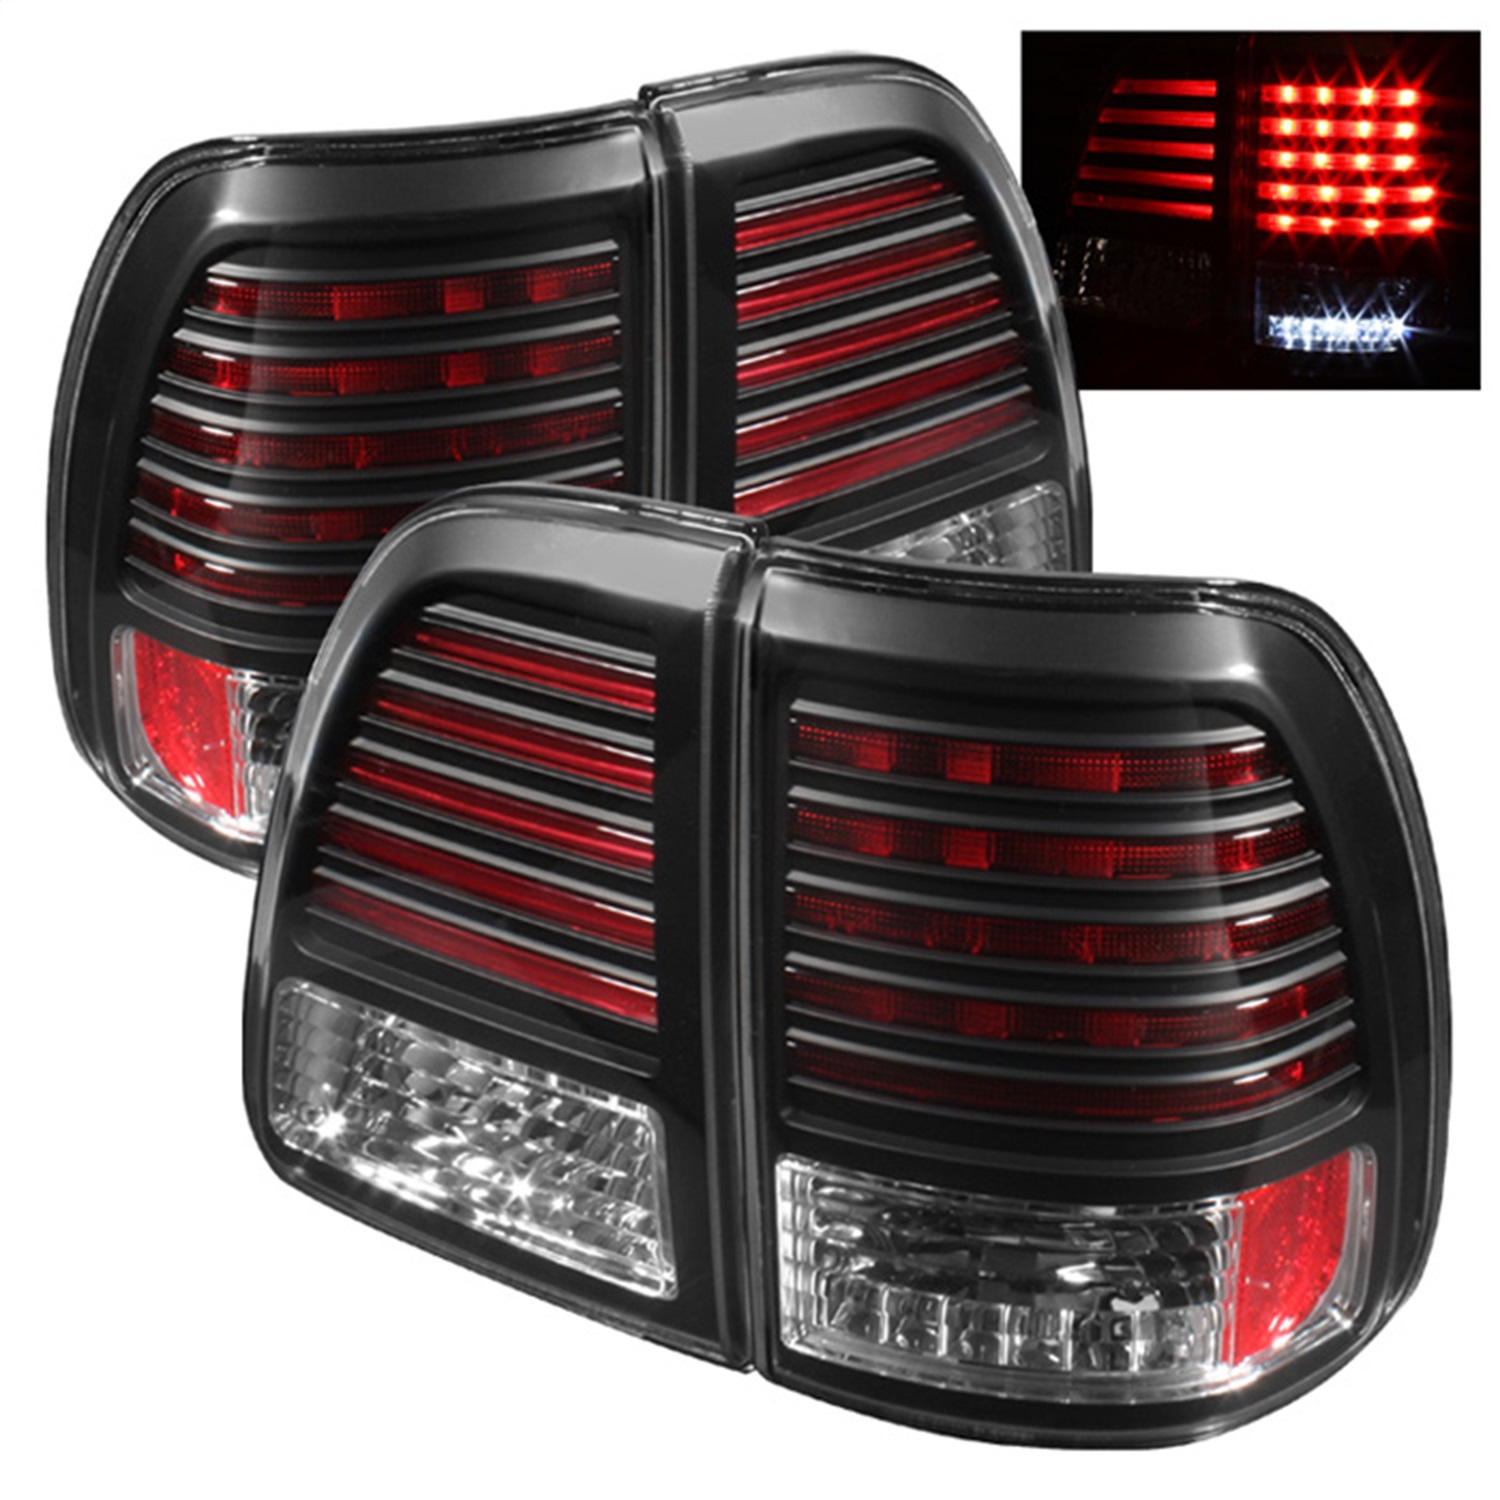 Spyder Auto 5007537 LED Tail Lights Fits 98-05 Land Cruiser